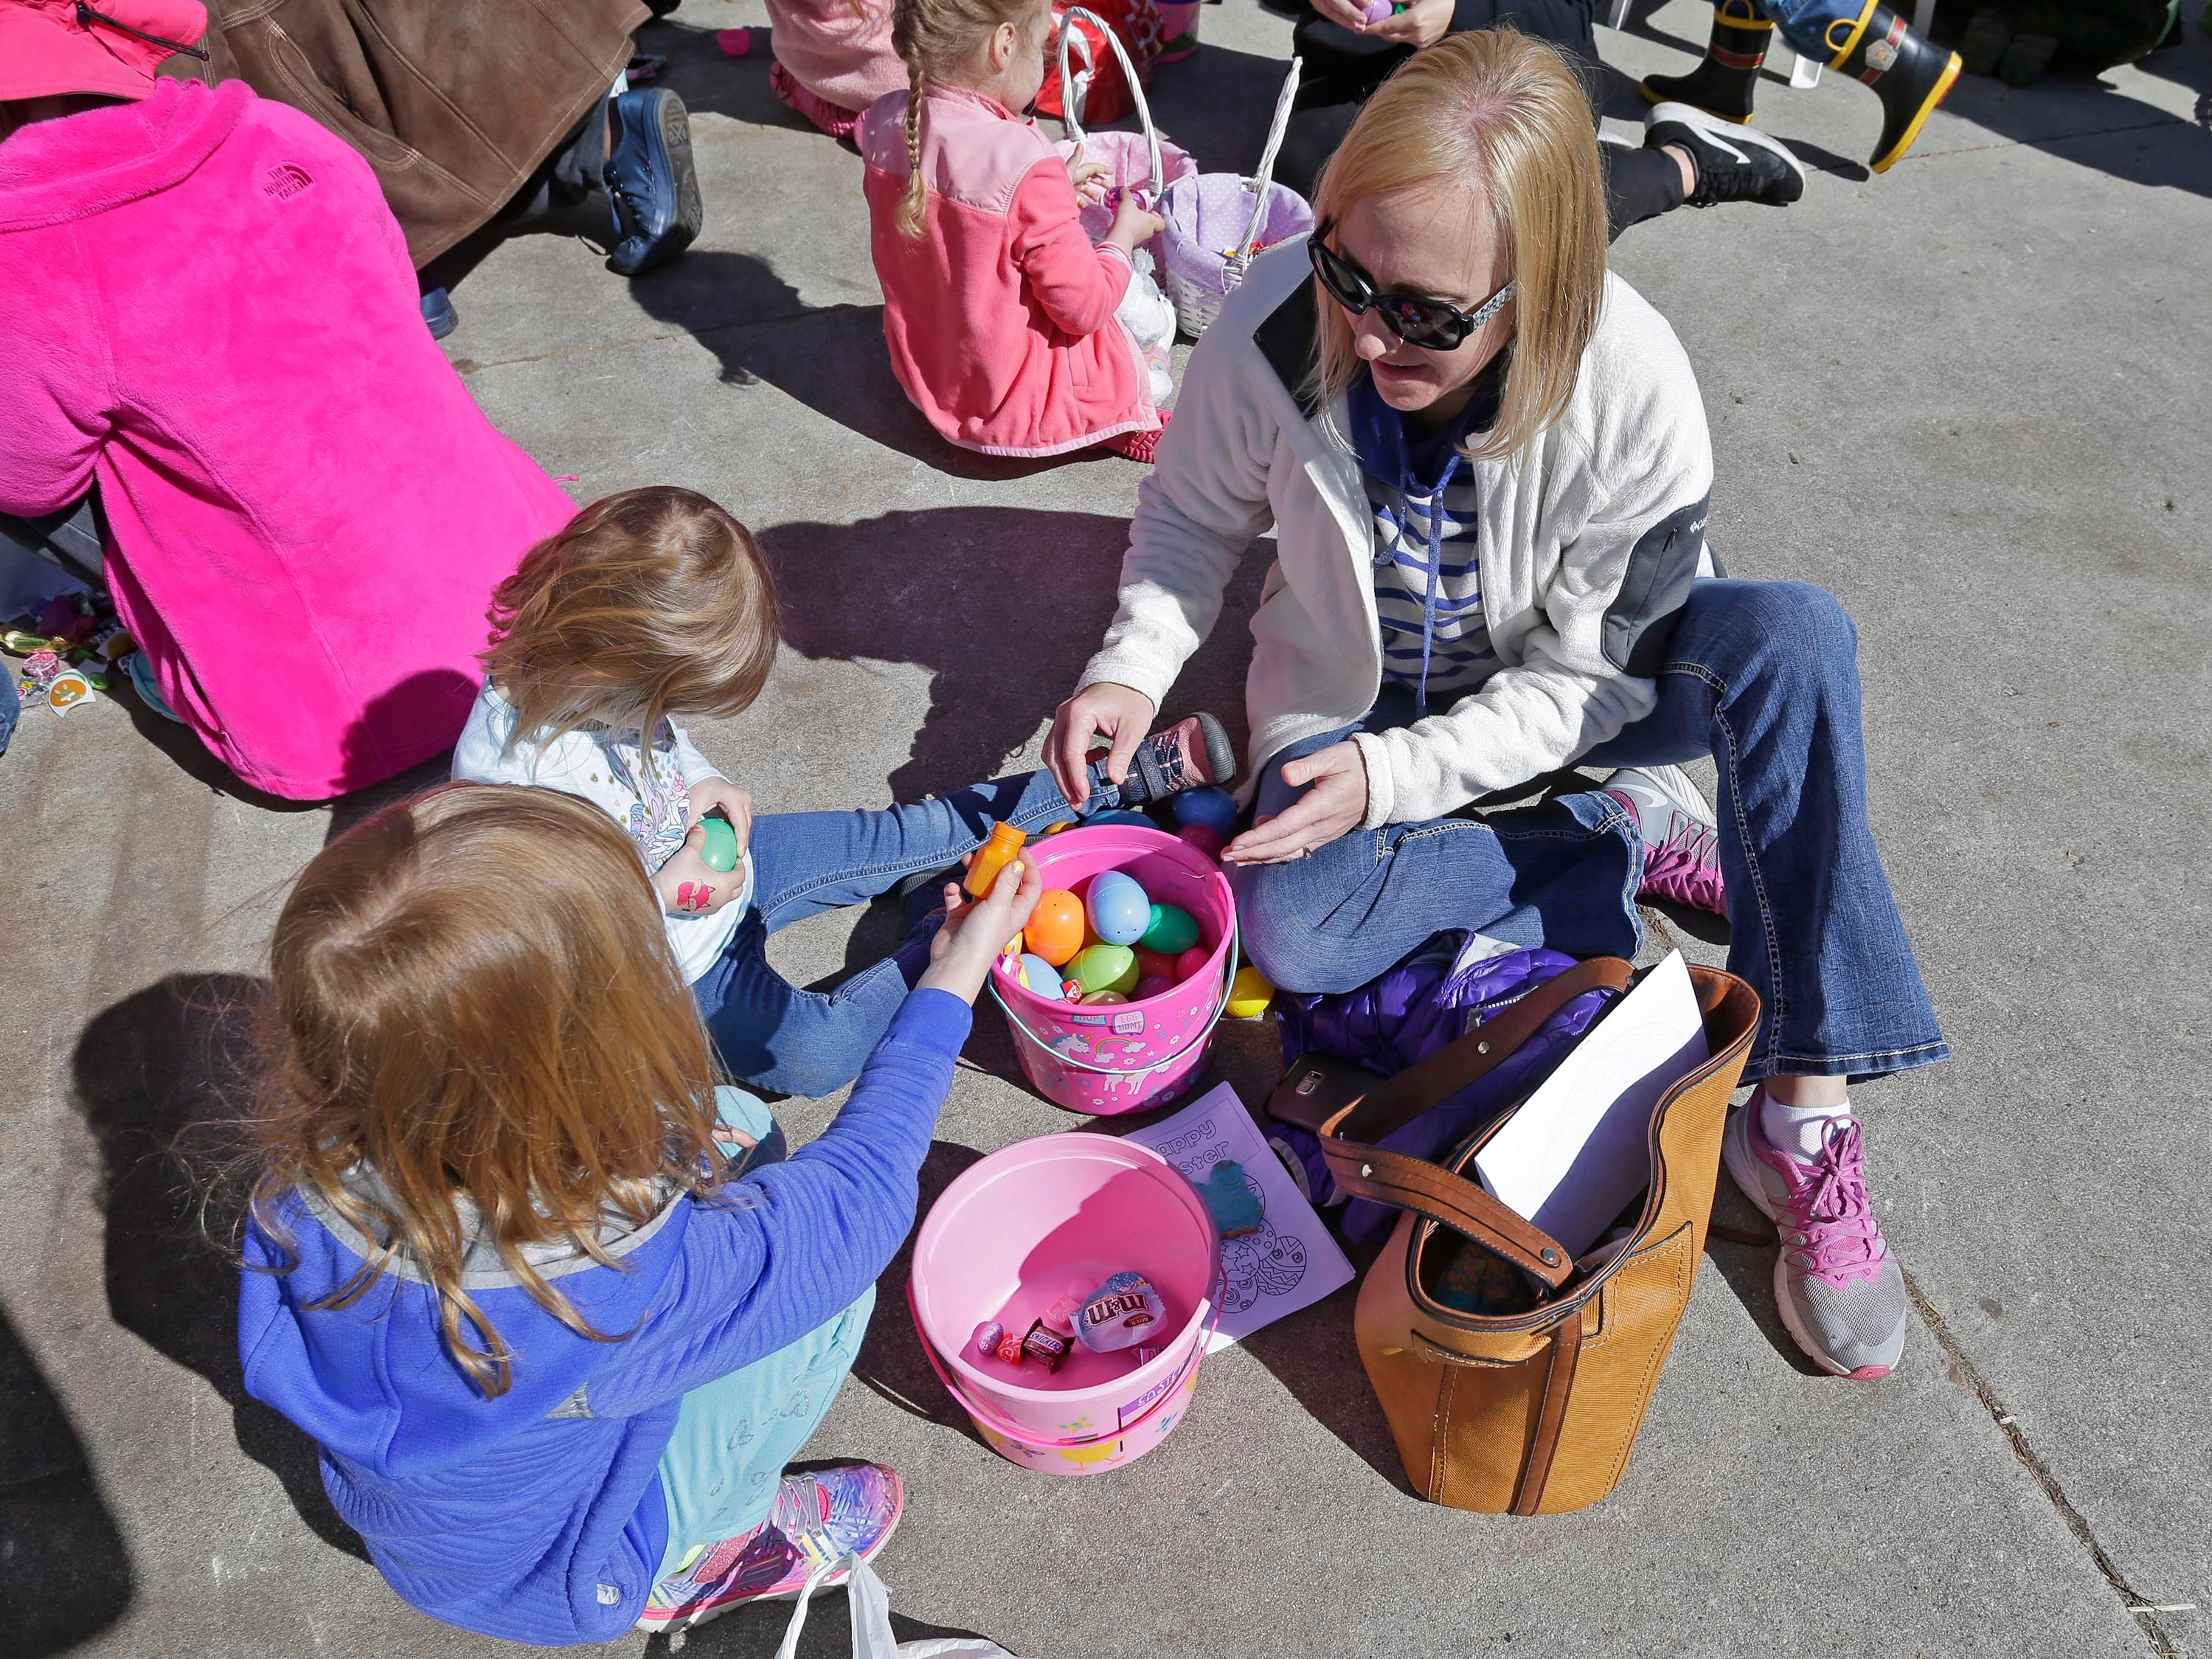 Melissa Munger, of Cleveland, Wis, right, helps her daughters Marcella, 6, and Cecilia, 3, open their easter eggs following the Hocevar Easter Egg Hunt, Saturday, April 20, 2019, in Sheboygan Falls, Wis.  This years marks 25 years for the Hocevar Family holding an Easter egg hunt at their home, according to Kathy Hocevar.